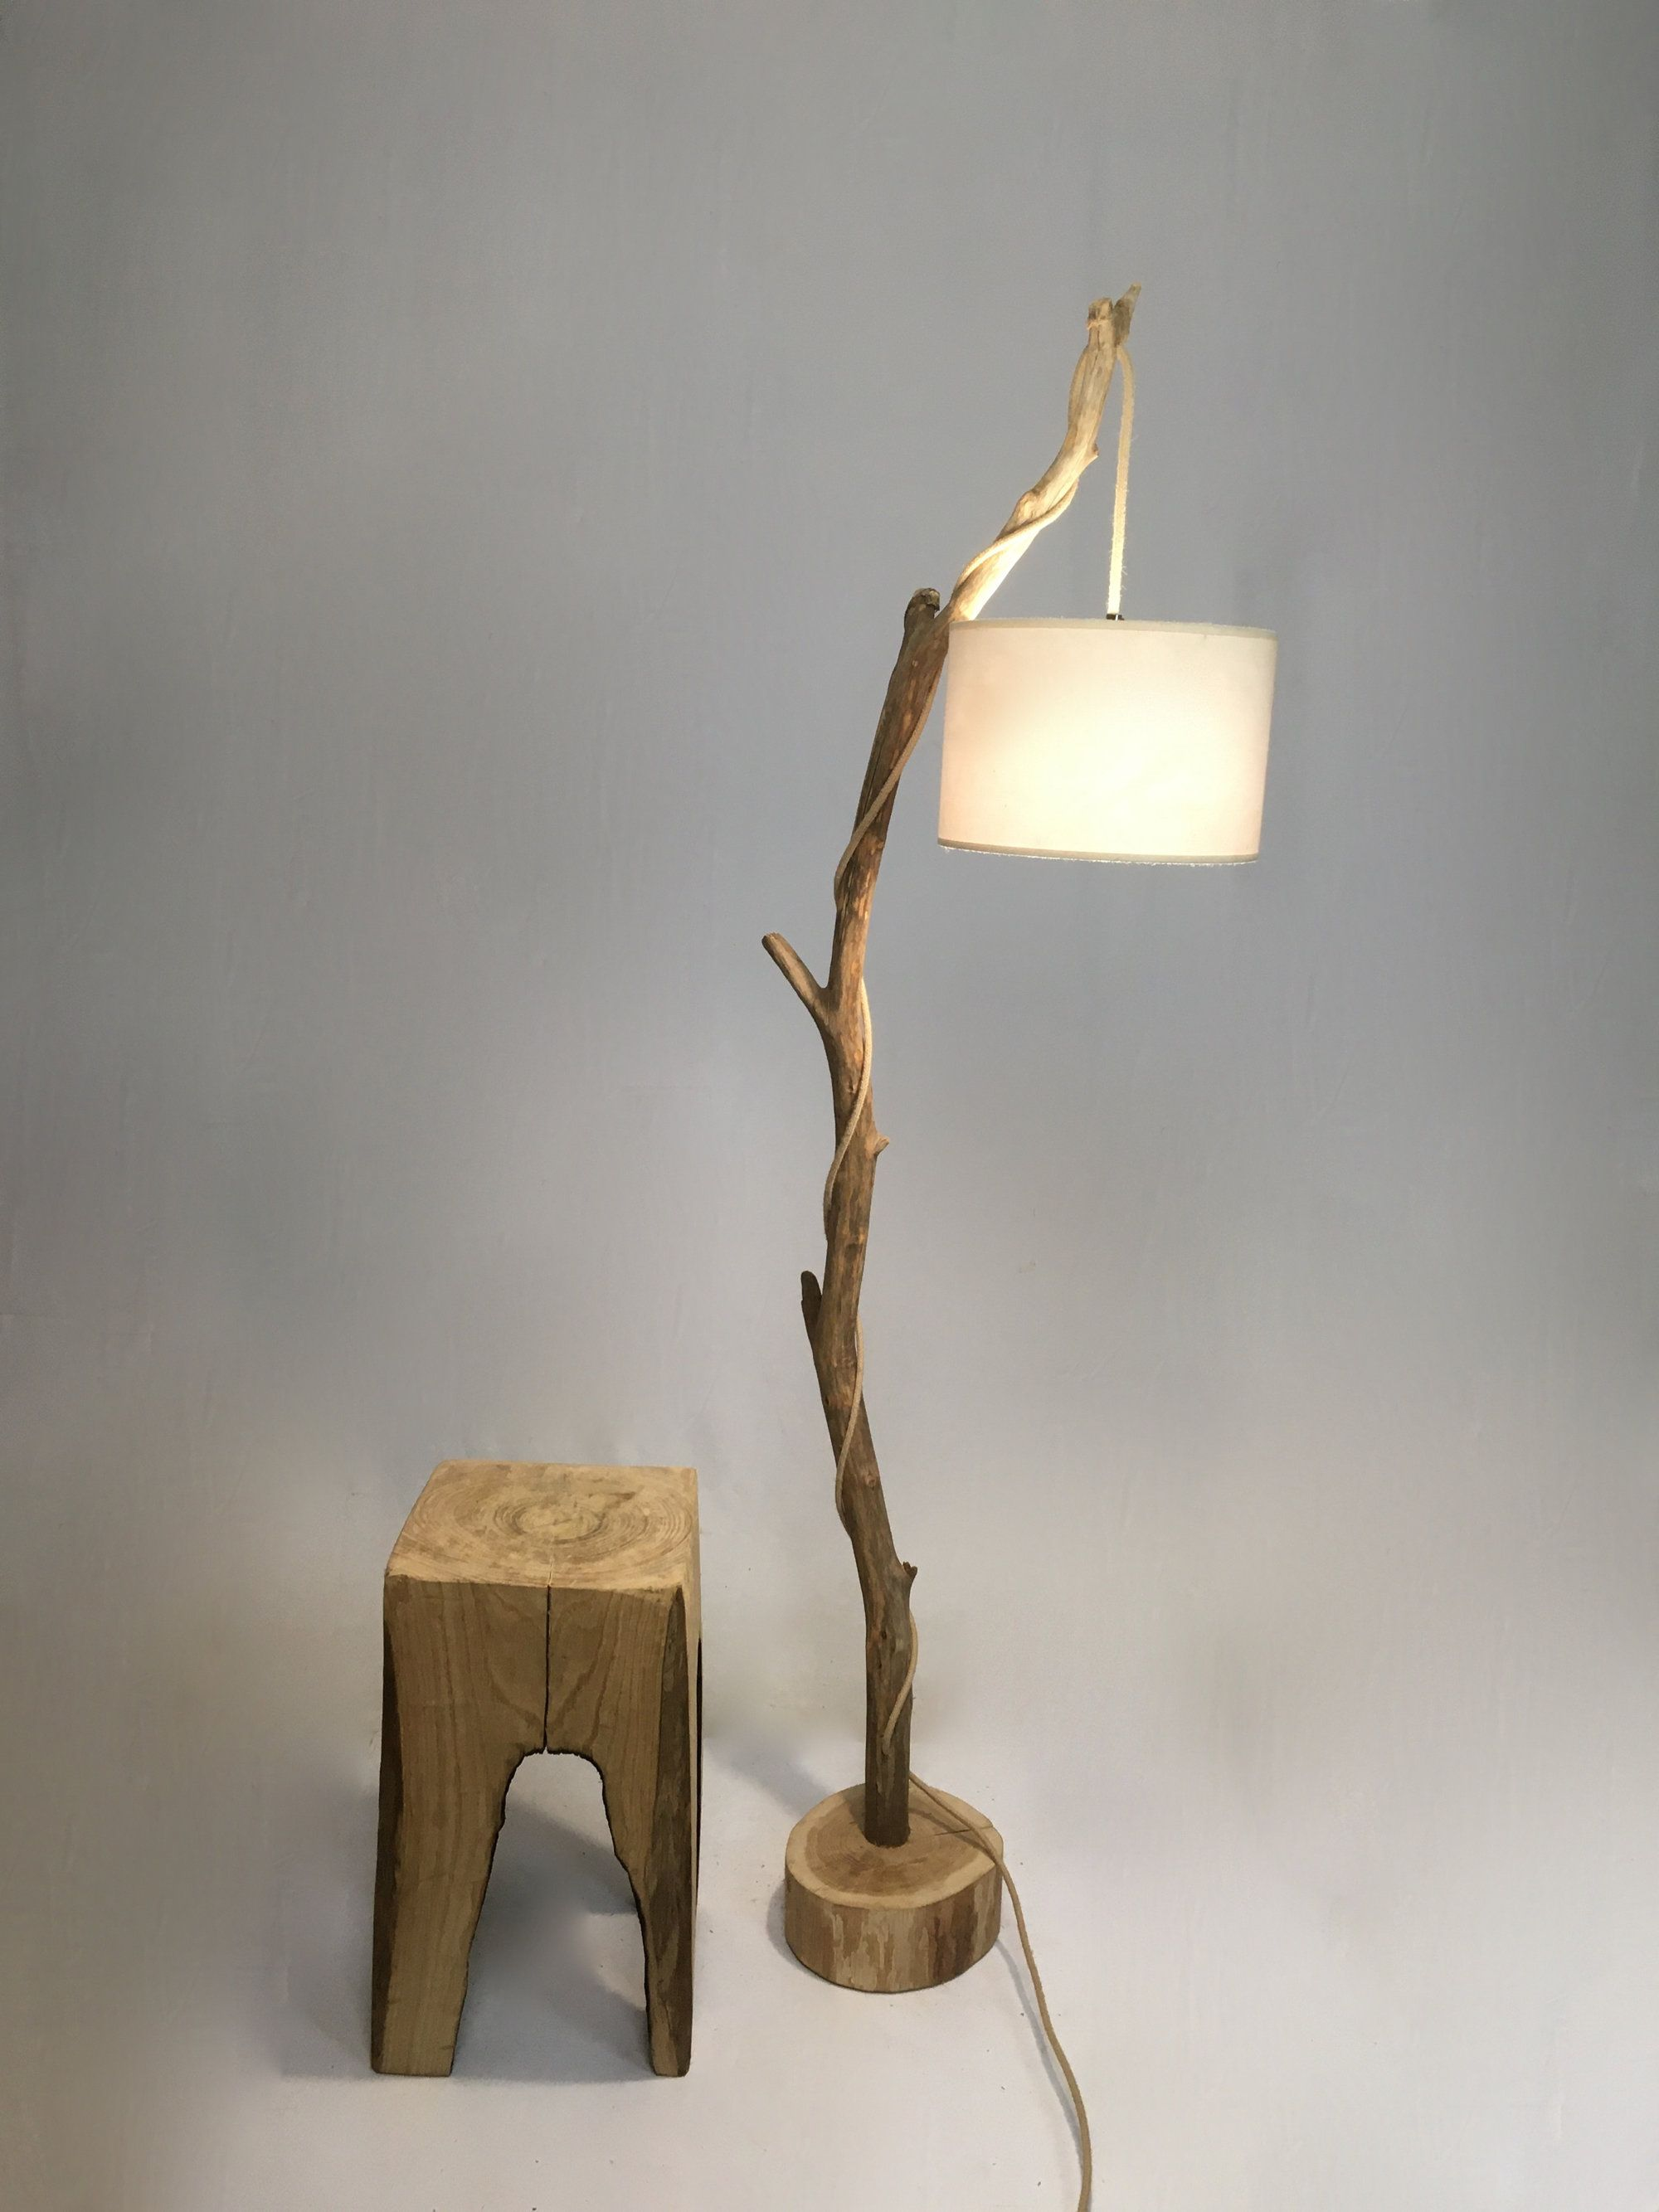 Old Branch Floor Lamp With Lamp Shade And Jute Cable Oldwoodlamp Woodenlamp Woodenfloorlamp Naturalwoodlamp Diy Lamp Shade Diy Floor Lamp Tree Floor Lamp